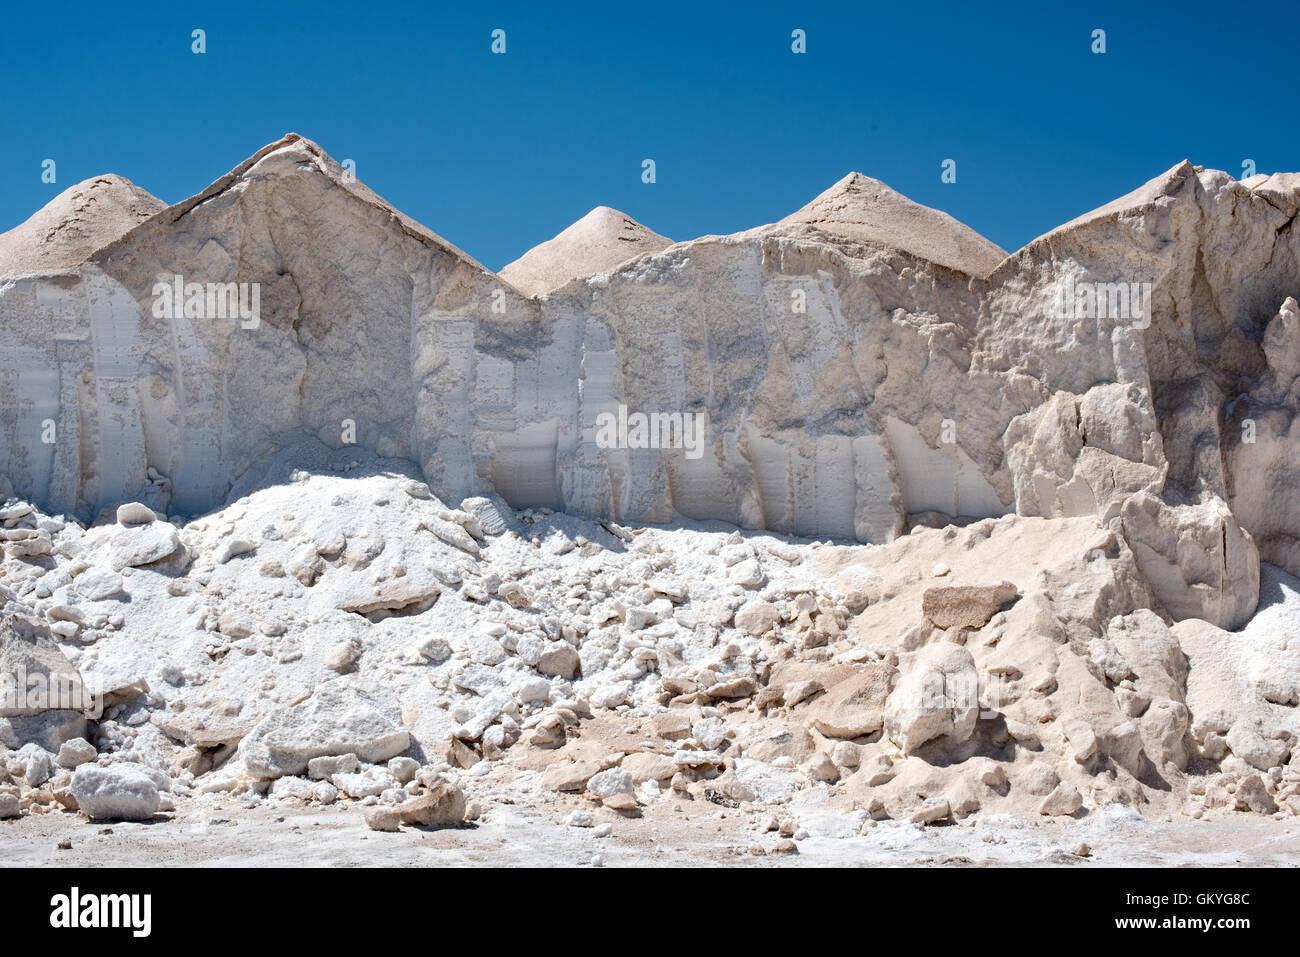 Mounds of salt or saline dried out by evaporation of the hot sun at a commercial salt farm under a clear sunny blue - Stock Image